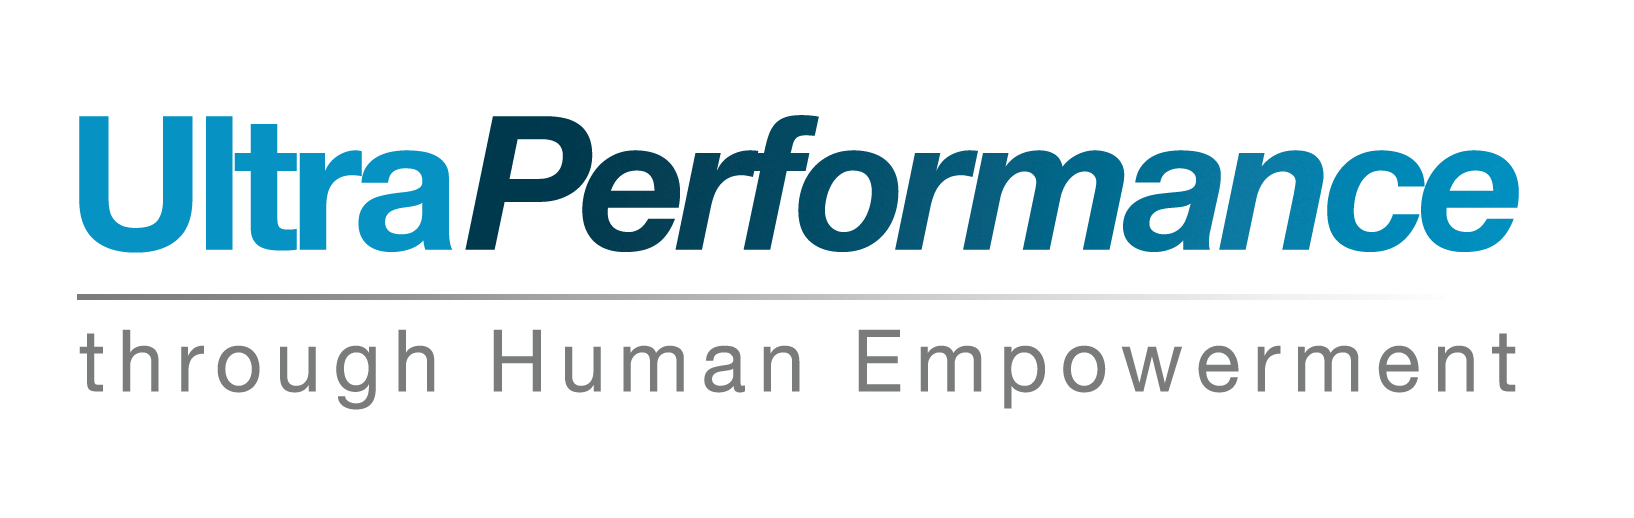 UltraPerformance & Human Empowerment / Epanouissement Humain